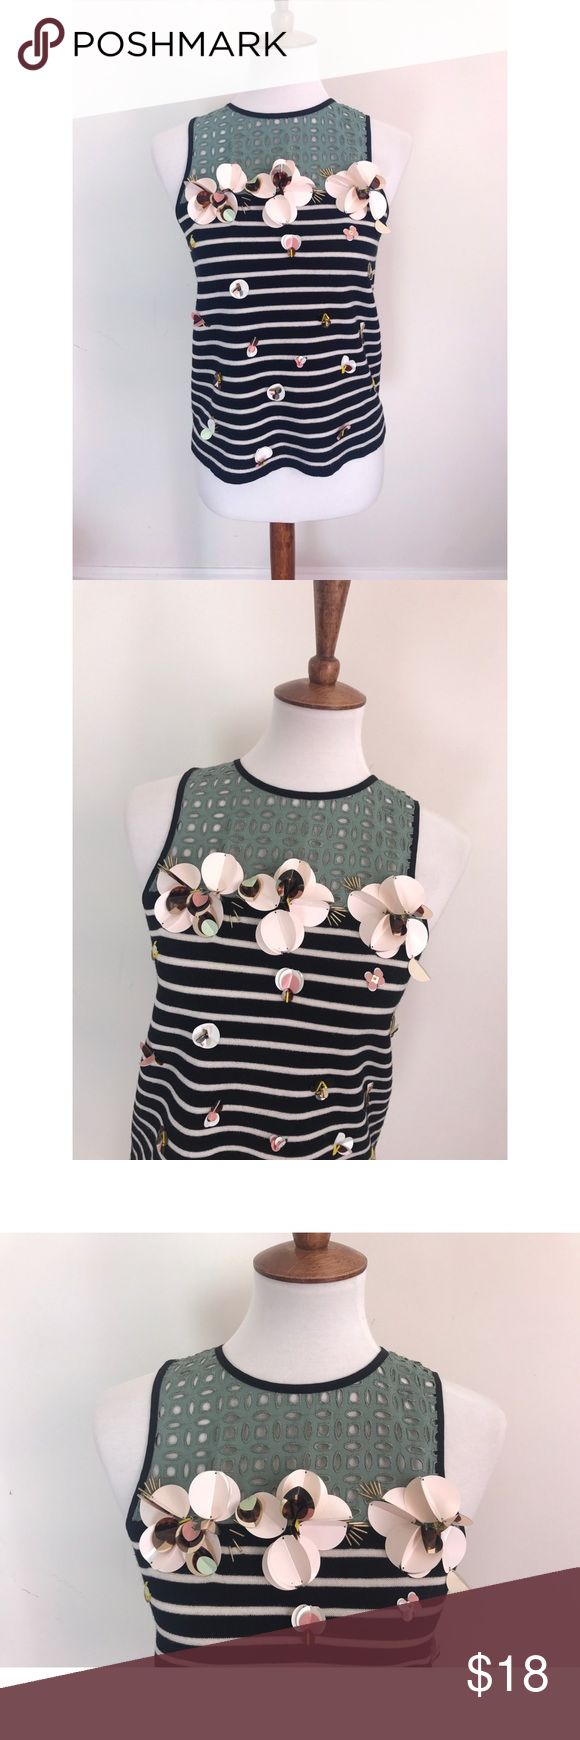 J. Crew black label striped floral embossed blouse - Size M. Brand new condition and has never been worn. The floral detail and the diamond like details are 3D, meaning they are attached to the blouse and not just embroidered. This blouse is so stunning.  - I don't trade or sell outside of posh. - I ship every single day!  - All items come from a smoke free home!  - If you have anymore questions just let me know and I would be happy to help! 🙂 J. Crew Tops Blouses